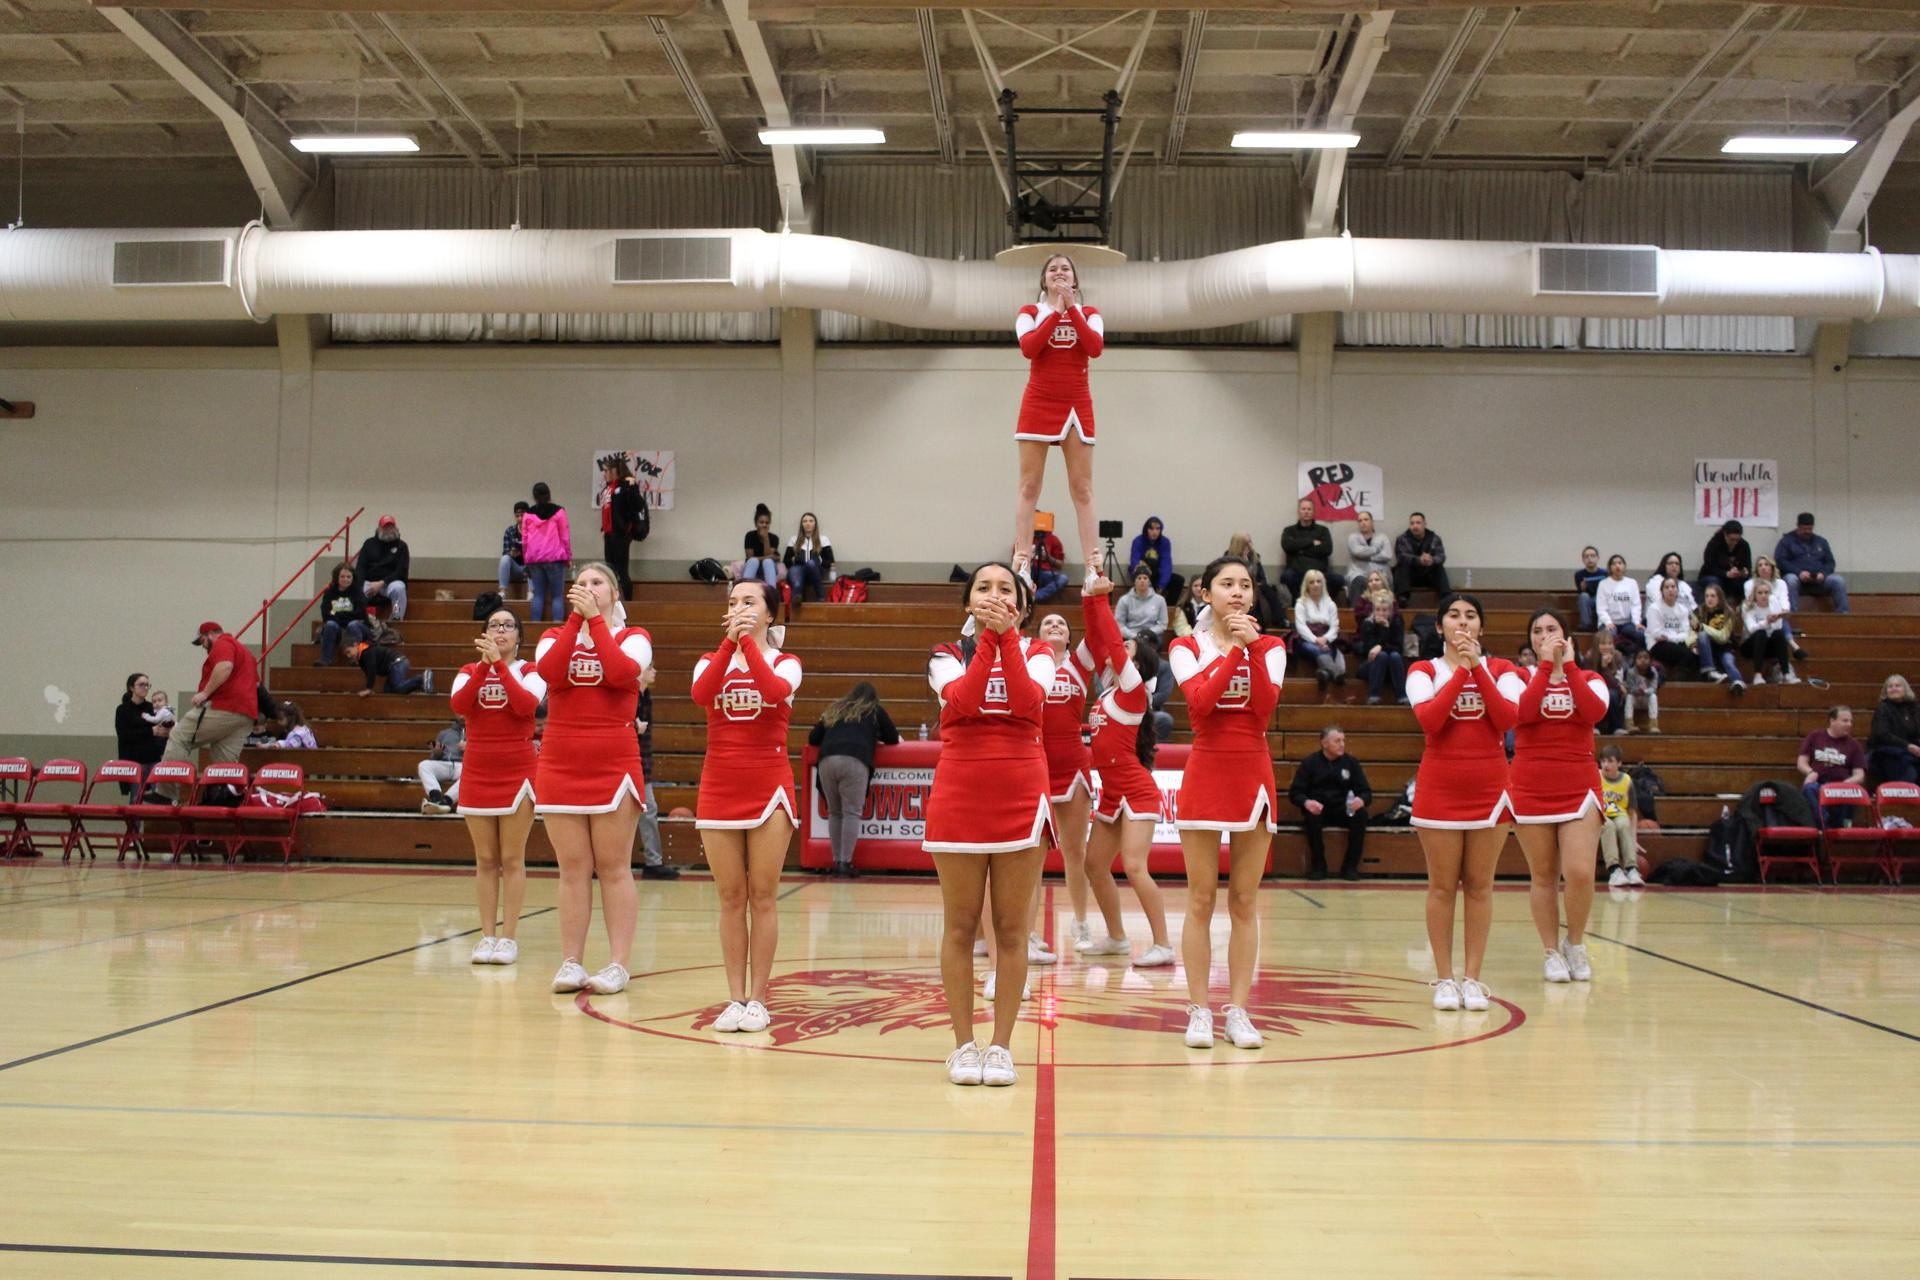 Cheer at the basketball game against Sierra